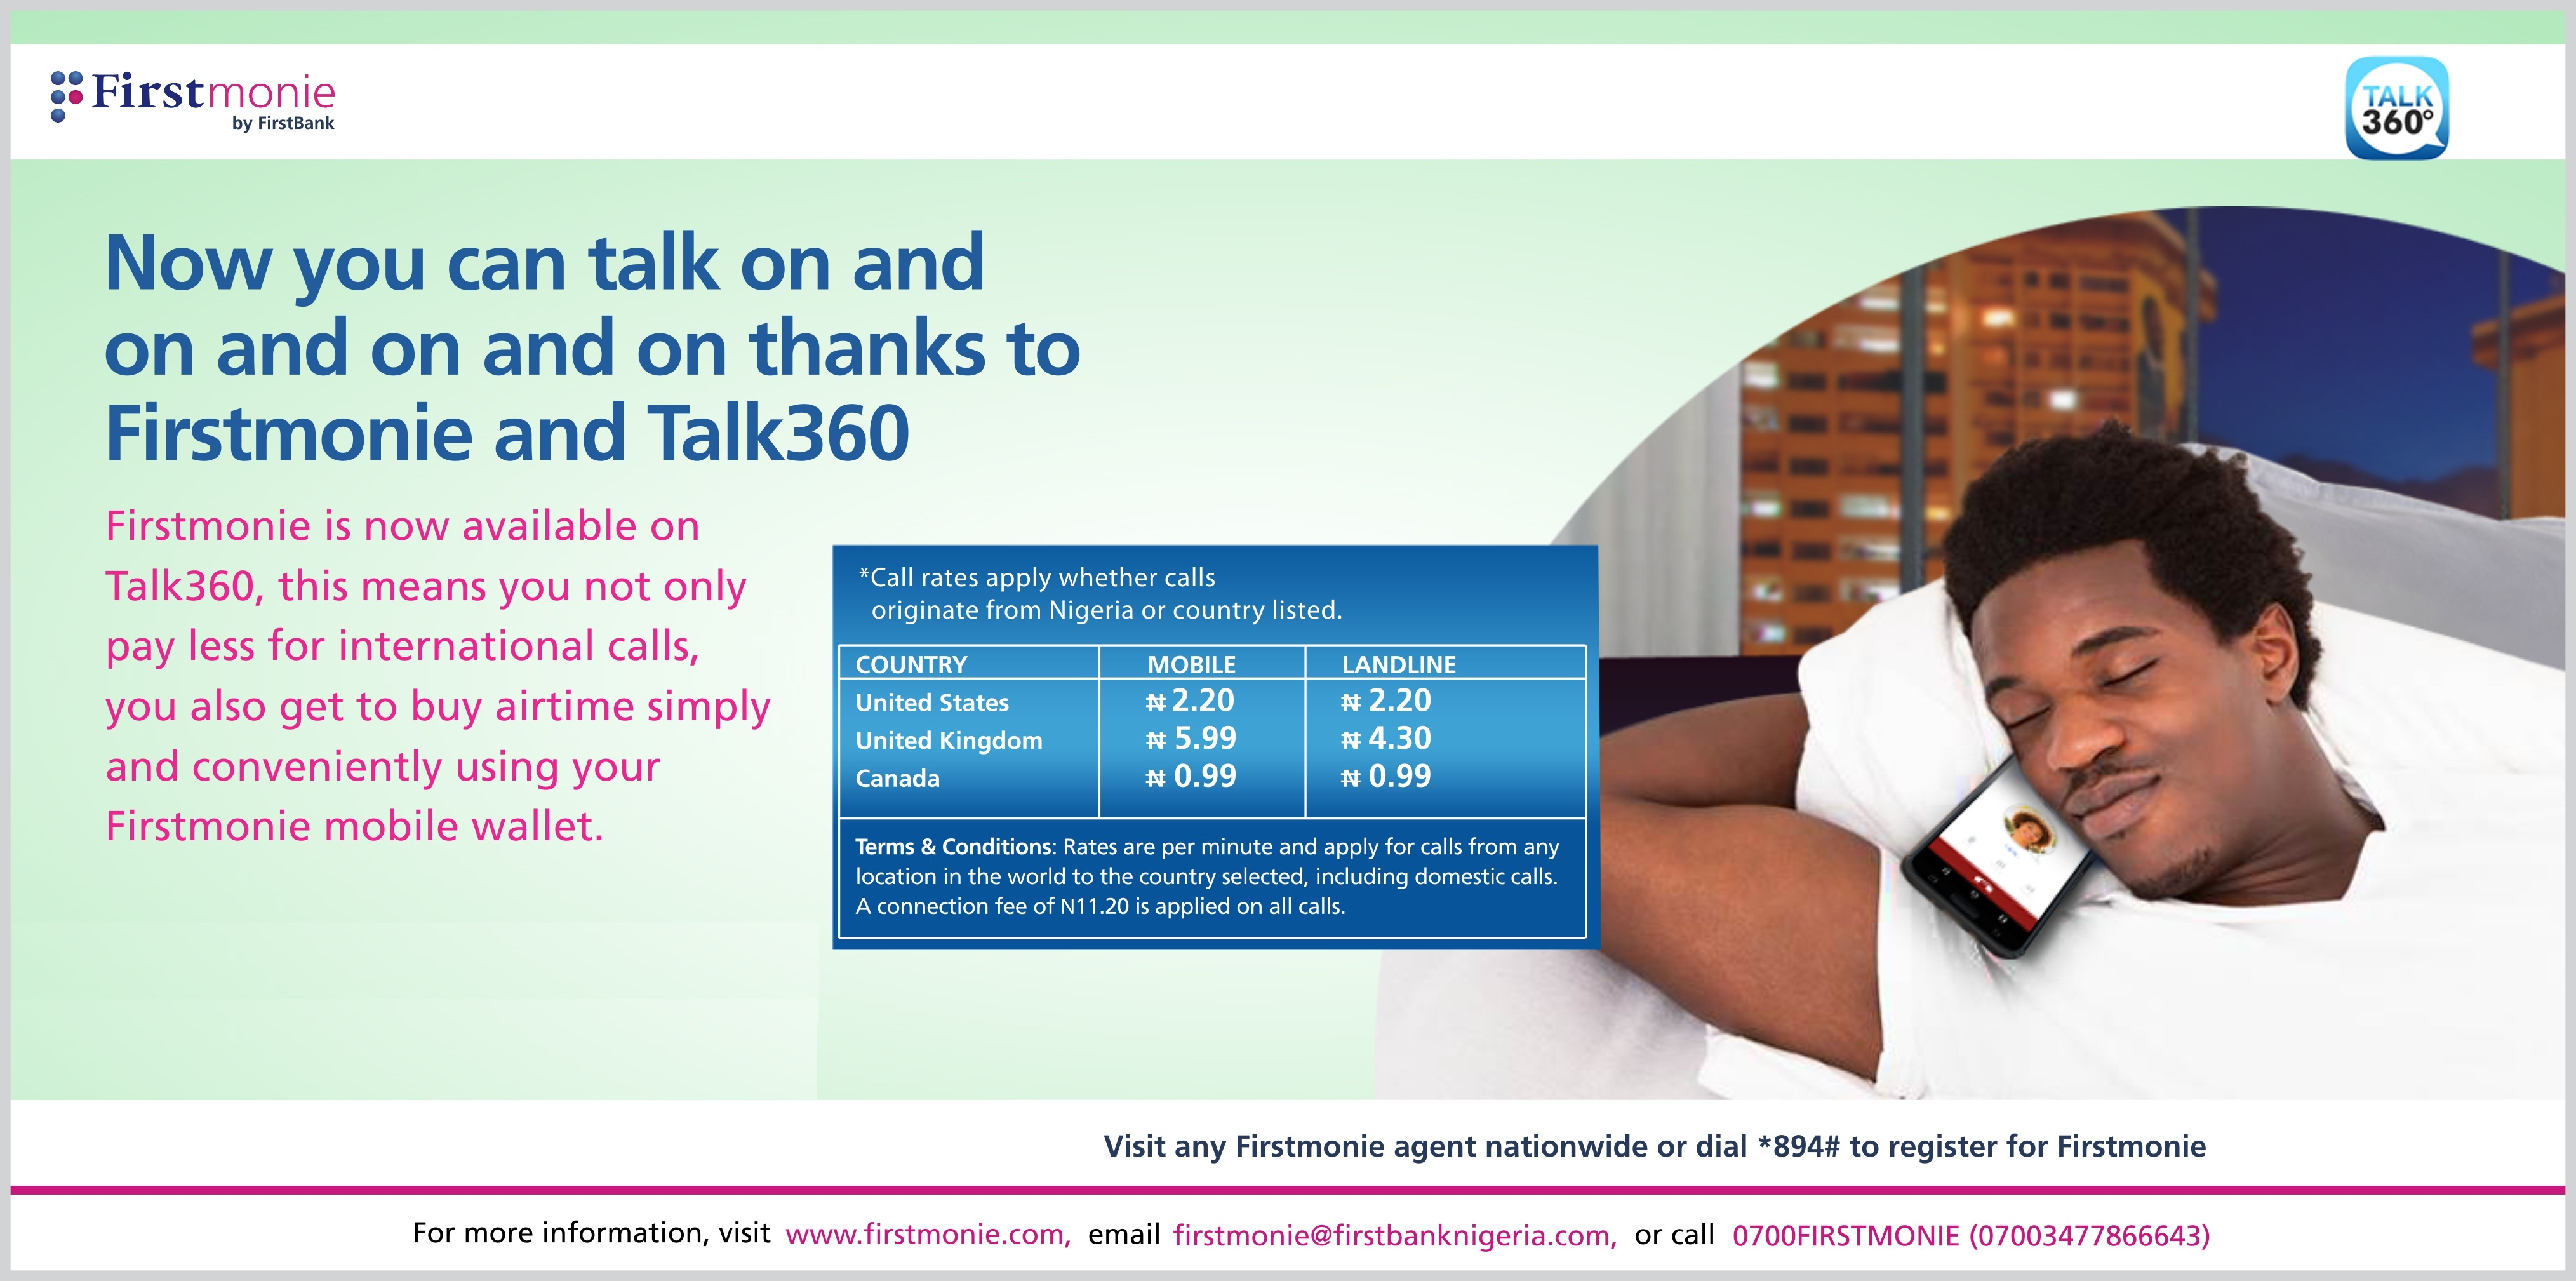 Firstmonie Introduces Talk360 To Enable You Make Savings On International Calls